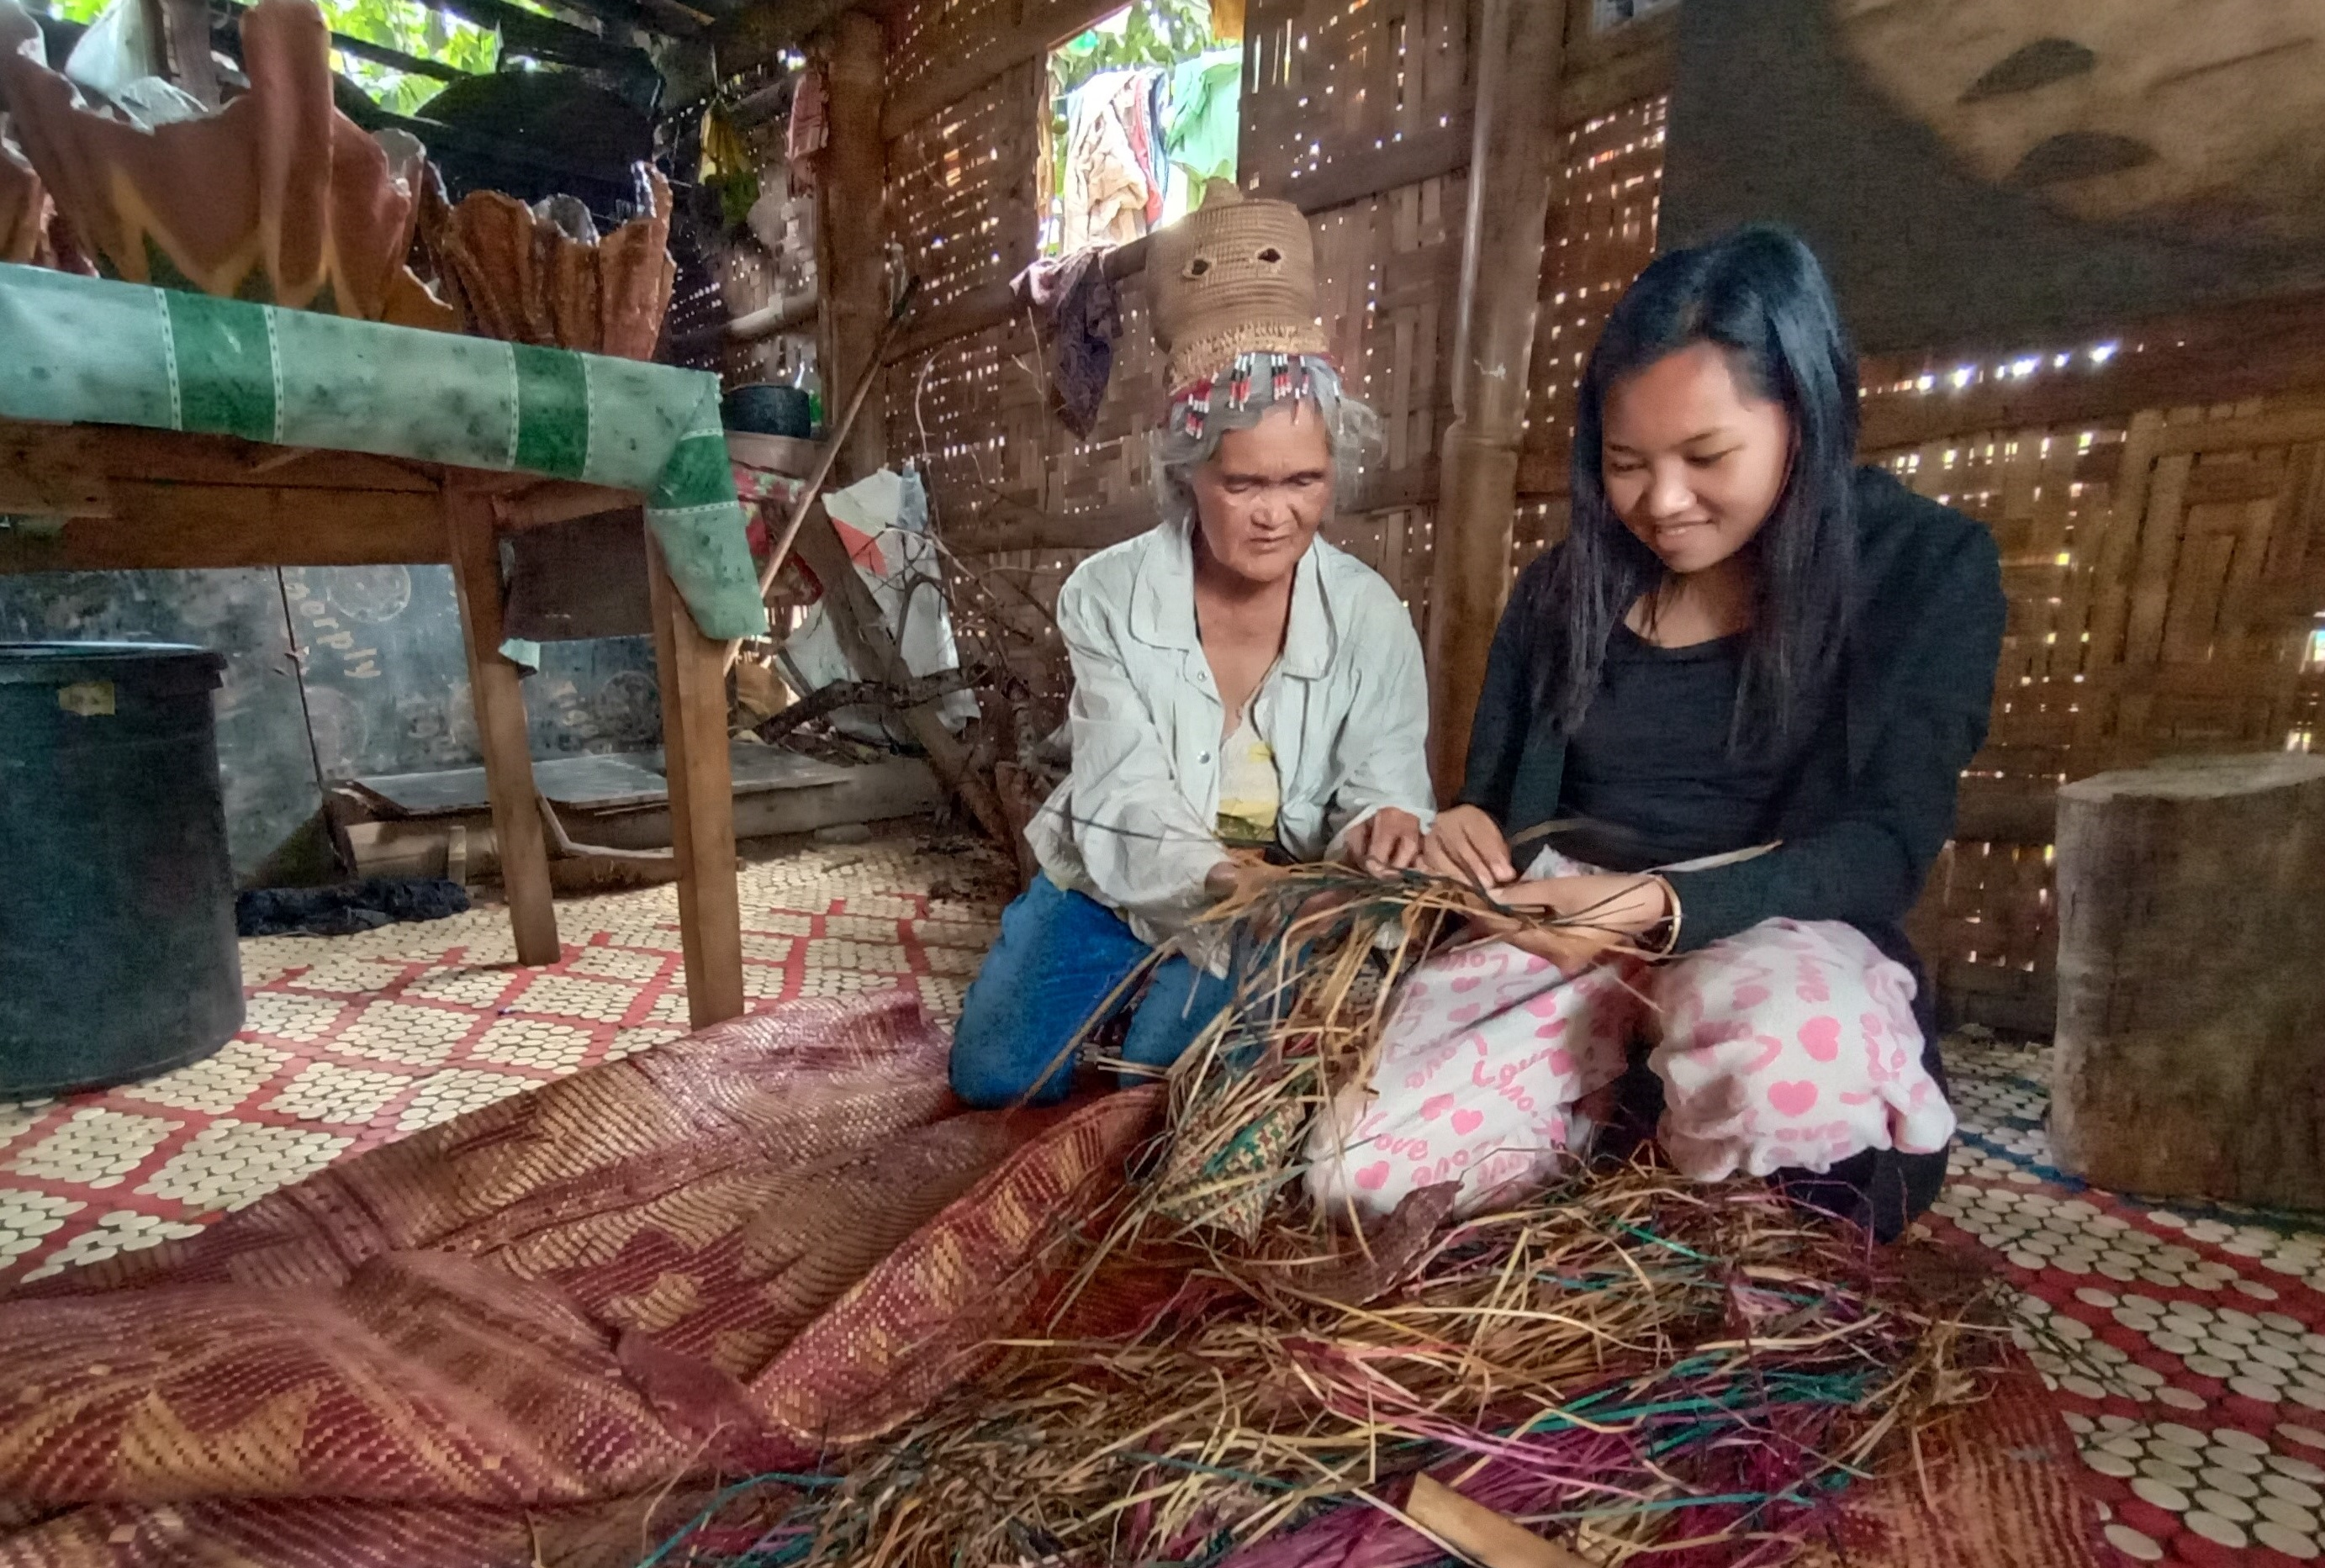 Nay Ipang mentors her child Dayan on mat weaving according to their culture's techniques and principles. She says weaving should be done only in the morning and in the late afternoon until evening. She believes that by noon grass is brittle.